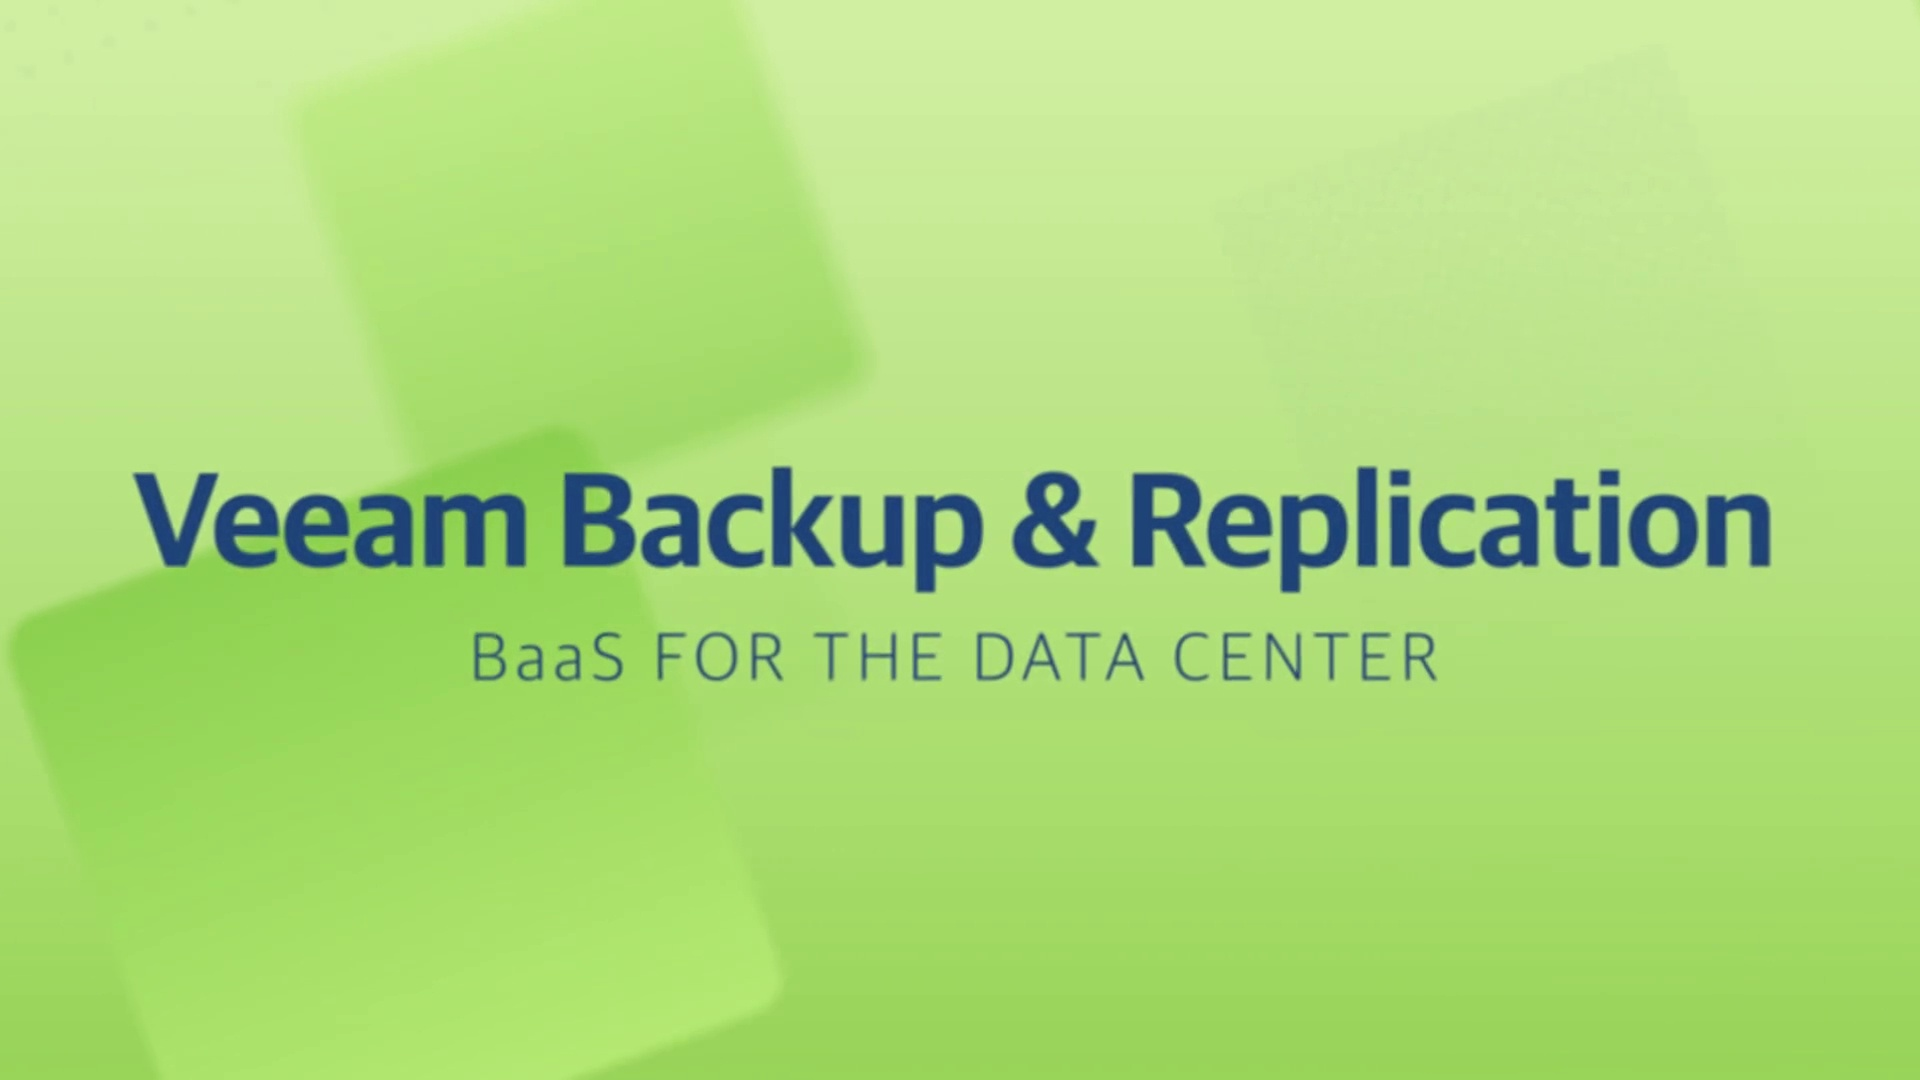 Product launch v11 - VBR - BaaS for the Data Center